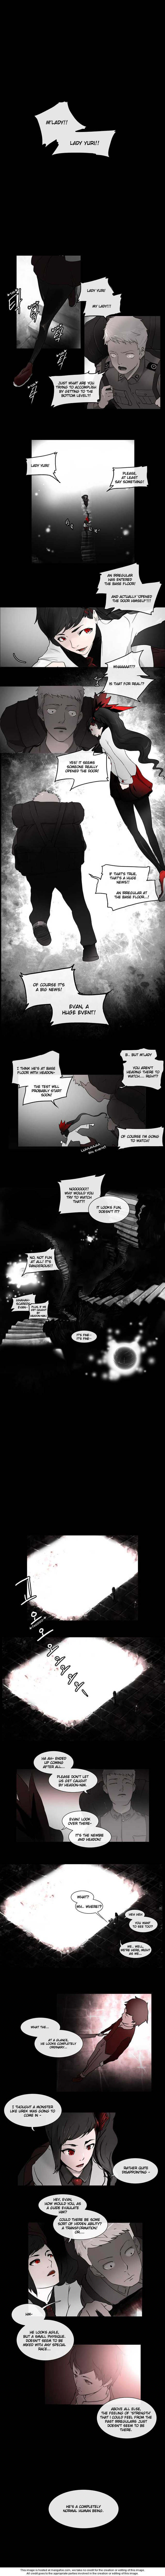 Tower of God 2 Page 2